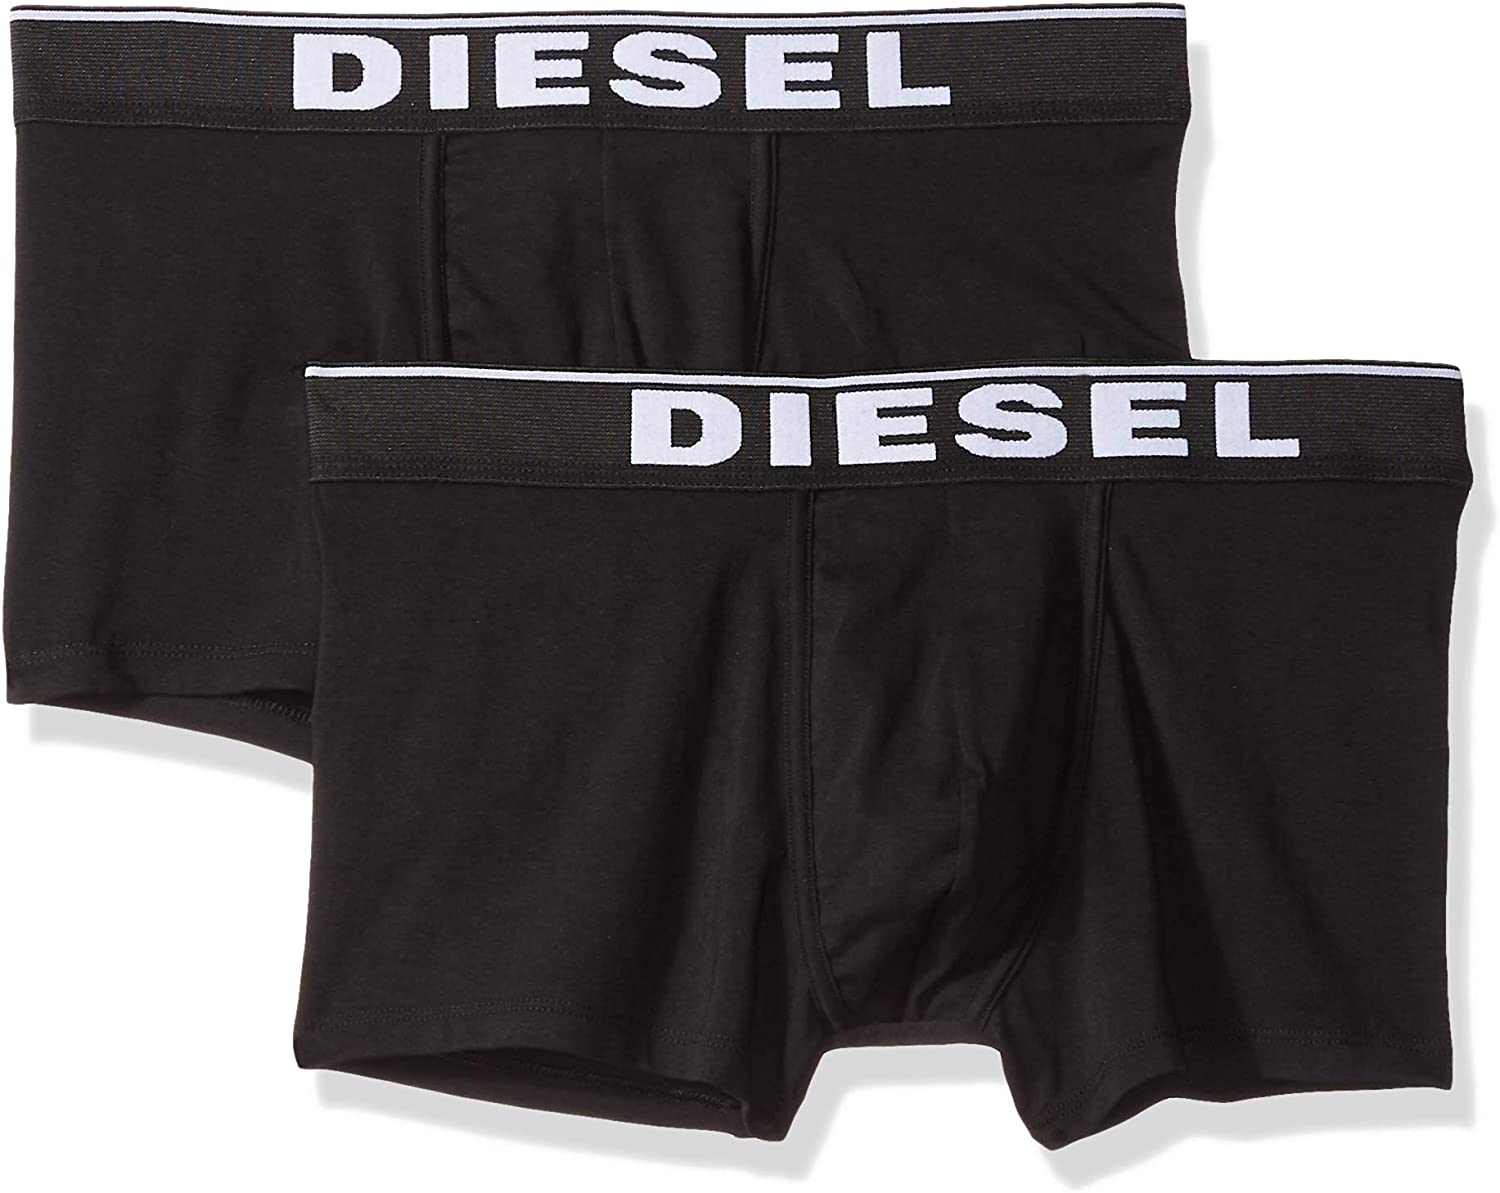 Direct store Diesel Men's UMBX-damientwopack Limited price Boxer 2 Pack Brief